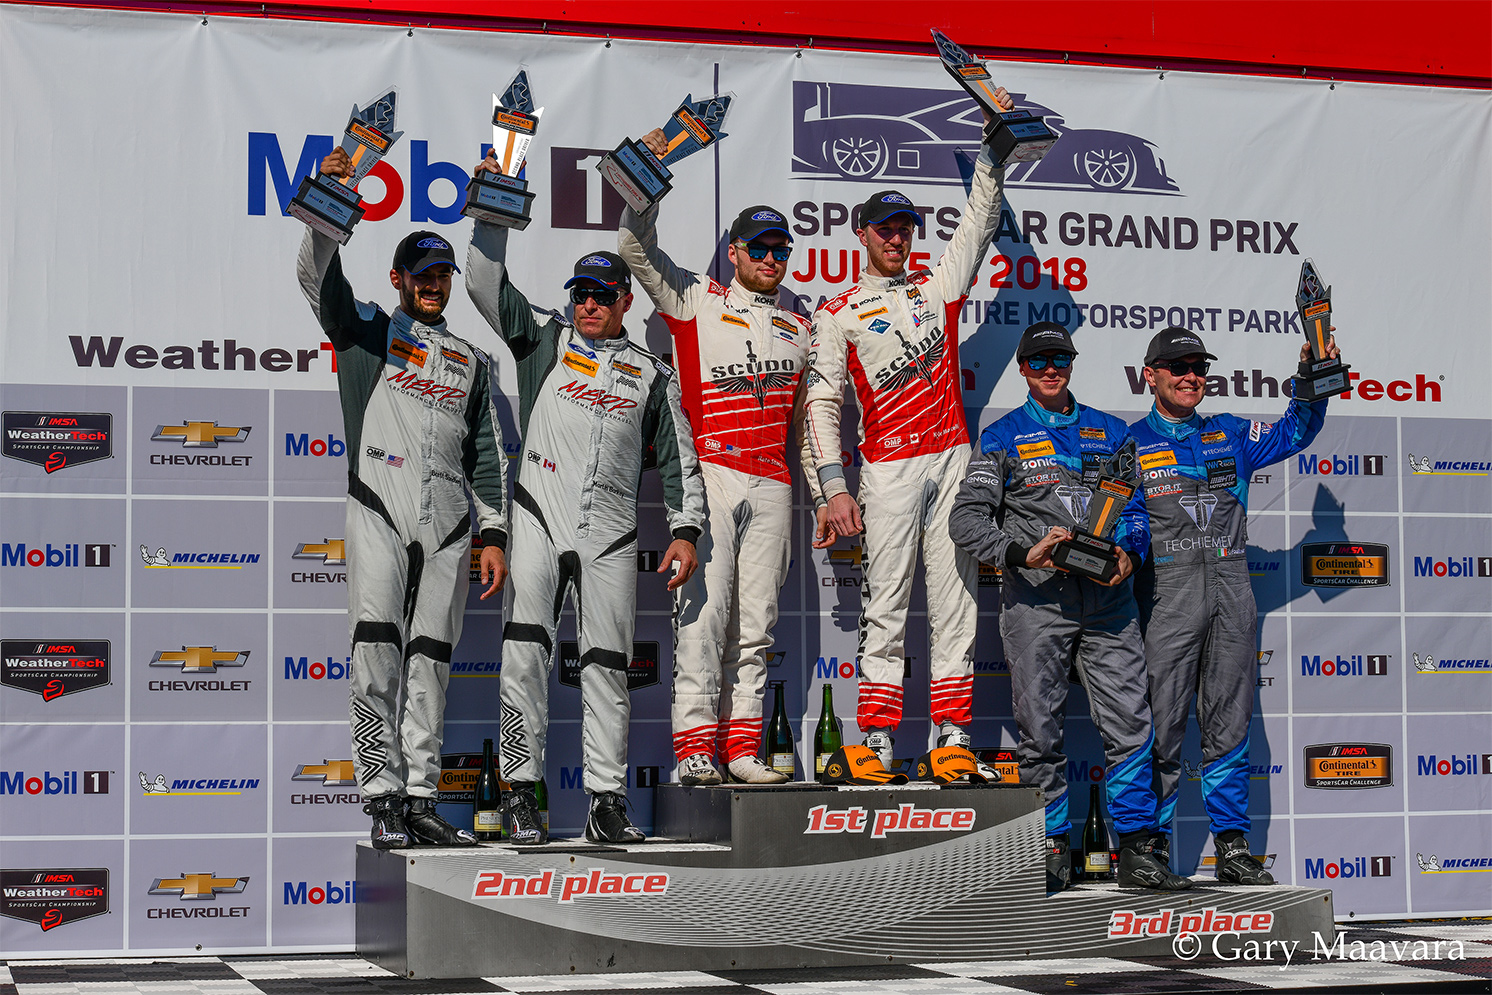 TrackWorthy - Continental Tire race_ Winning teams on the podium